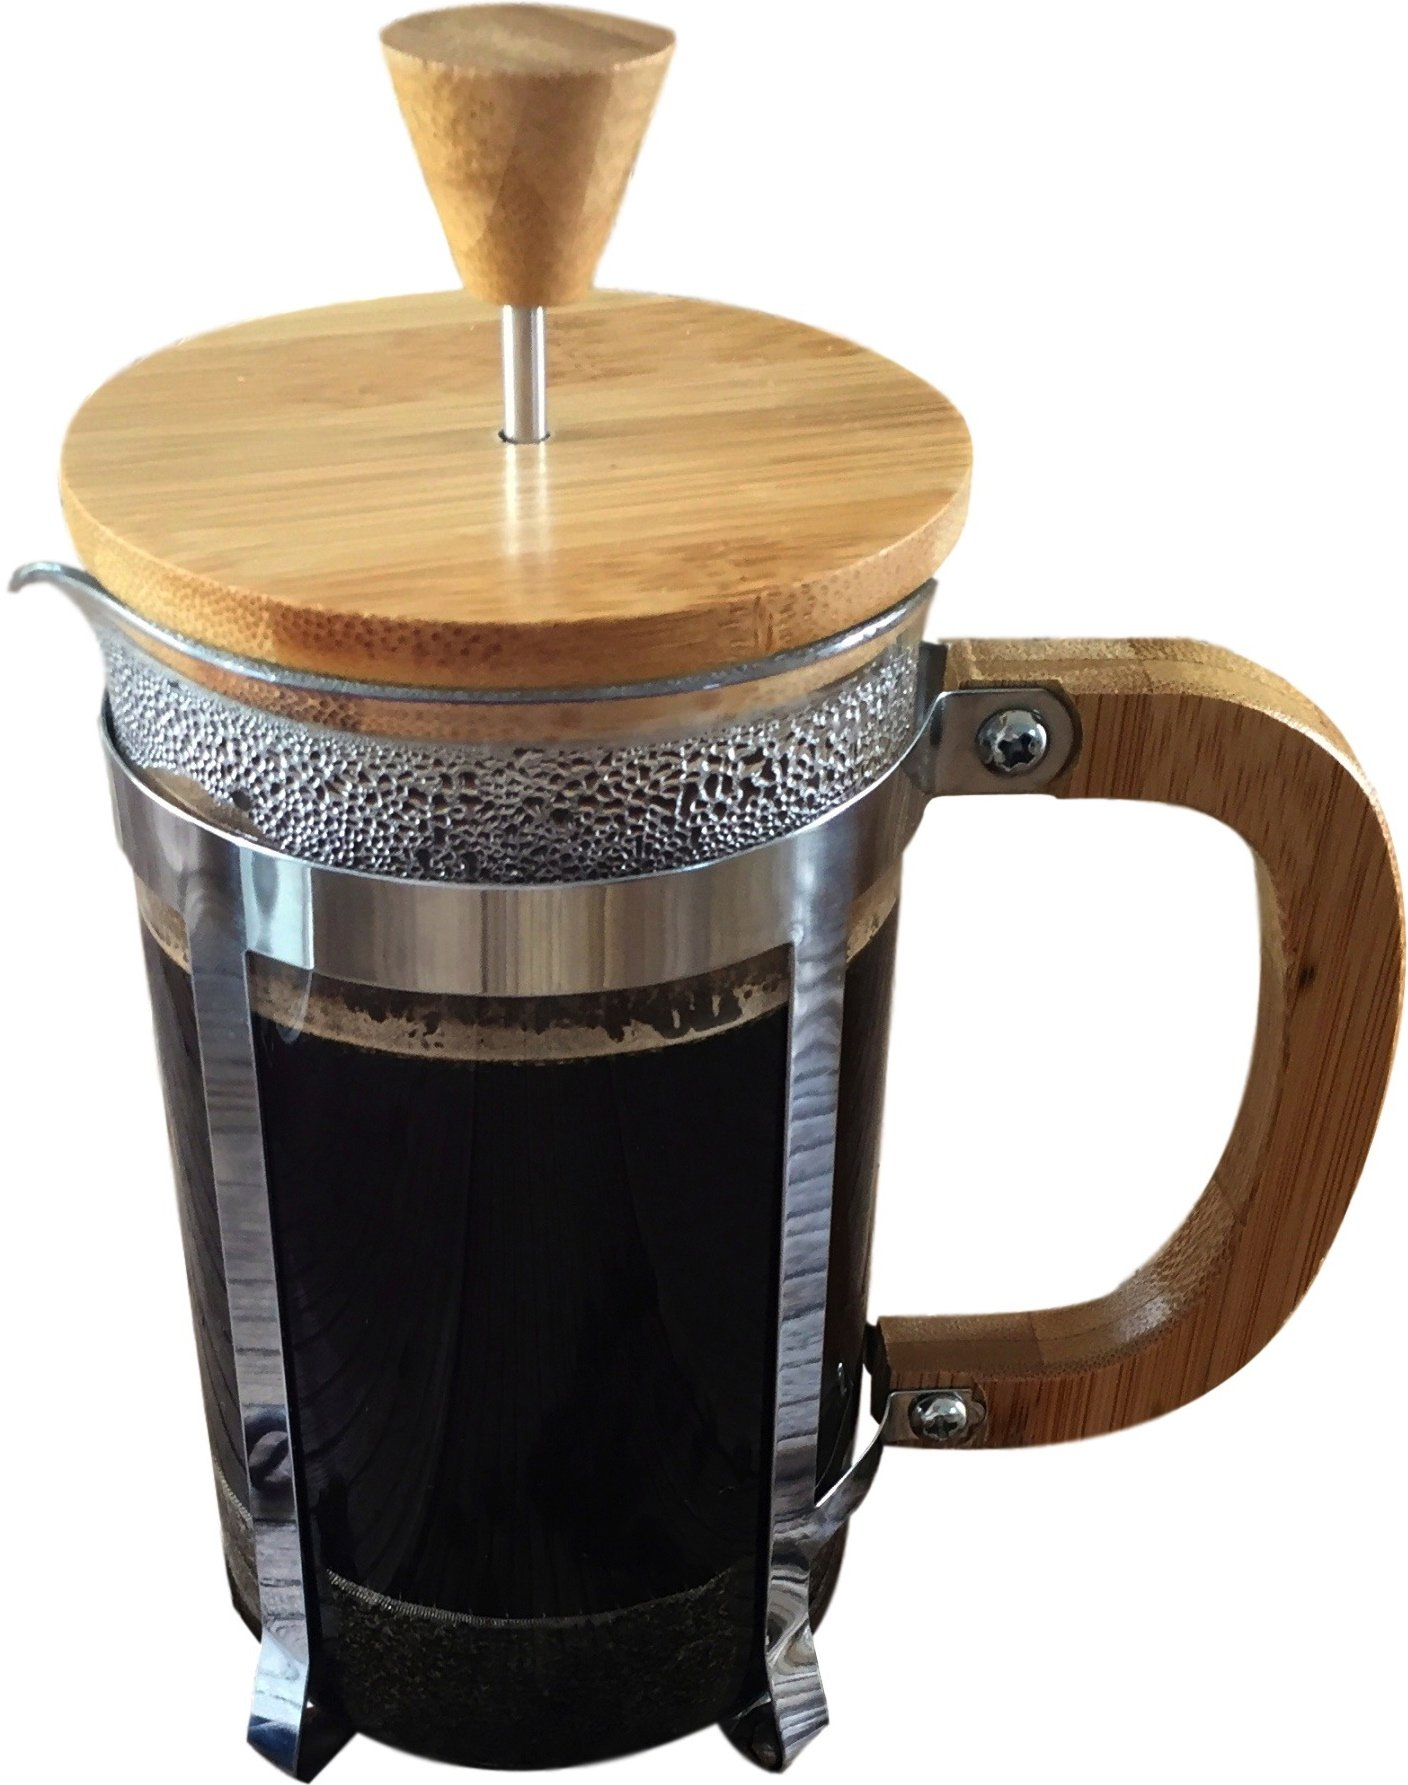 Starizzo French Press Coffee Maker For Home & Work, Travel, Camping, Tea, Cold Brew | Stylish Bamboo, BONUS Measuring Spoon, Compact Size 20oz | 600ml